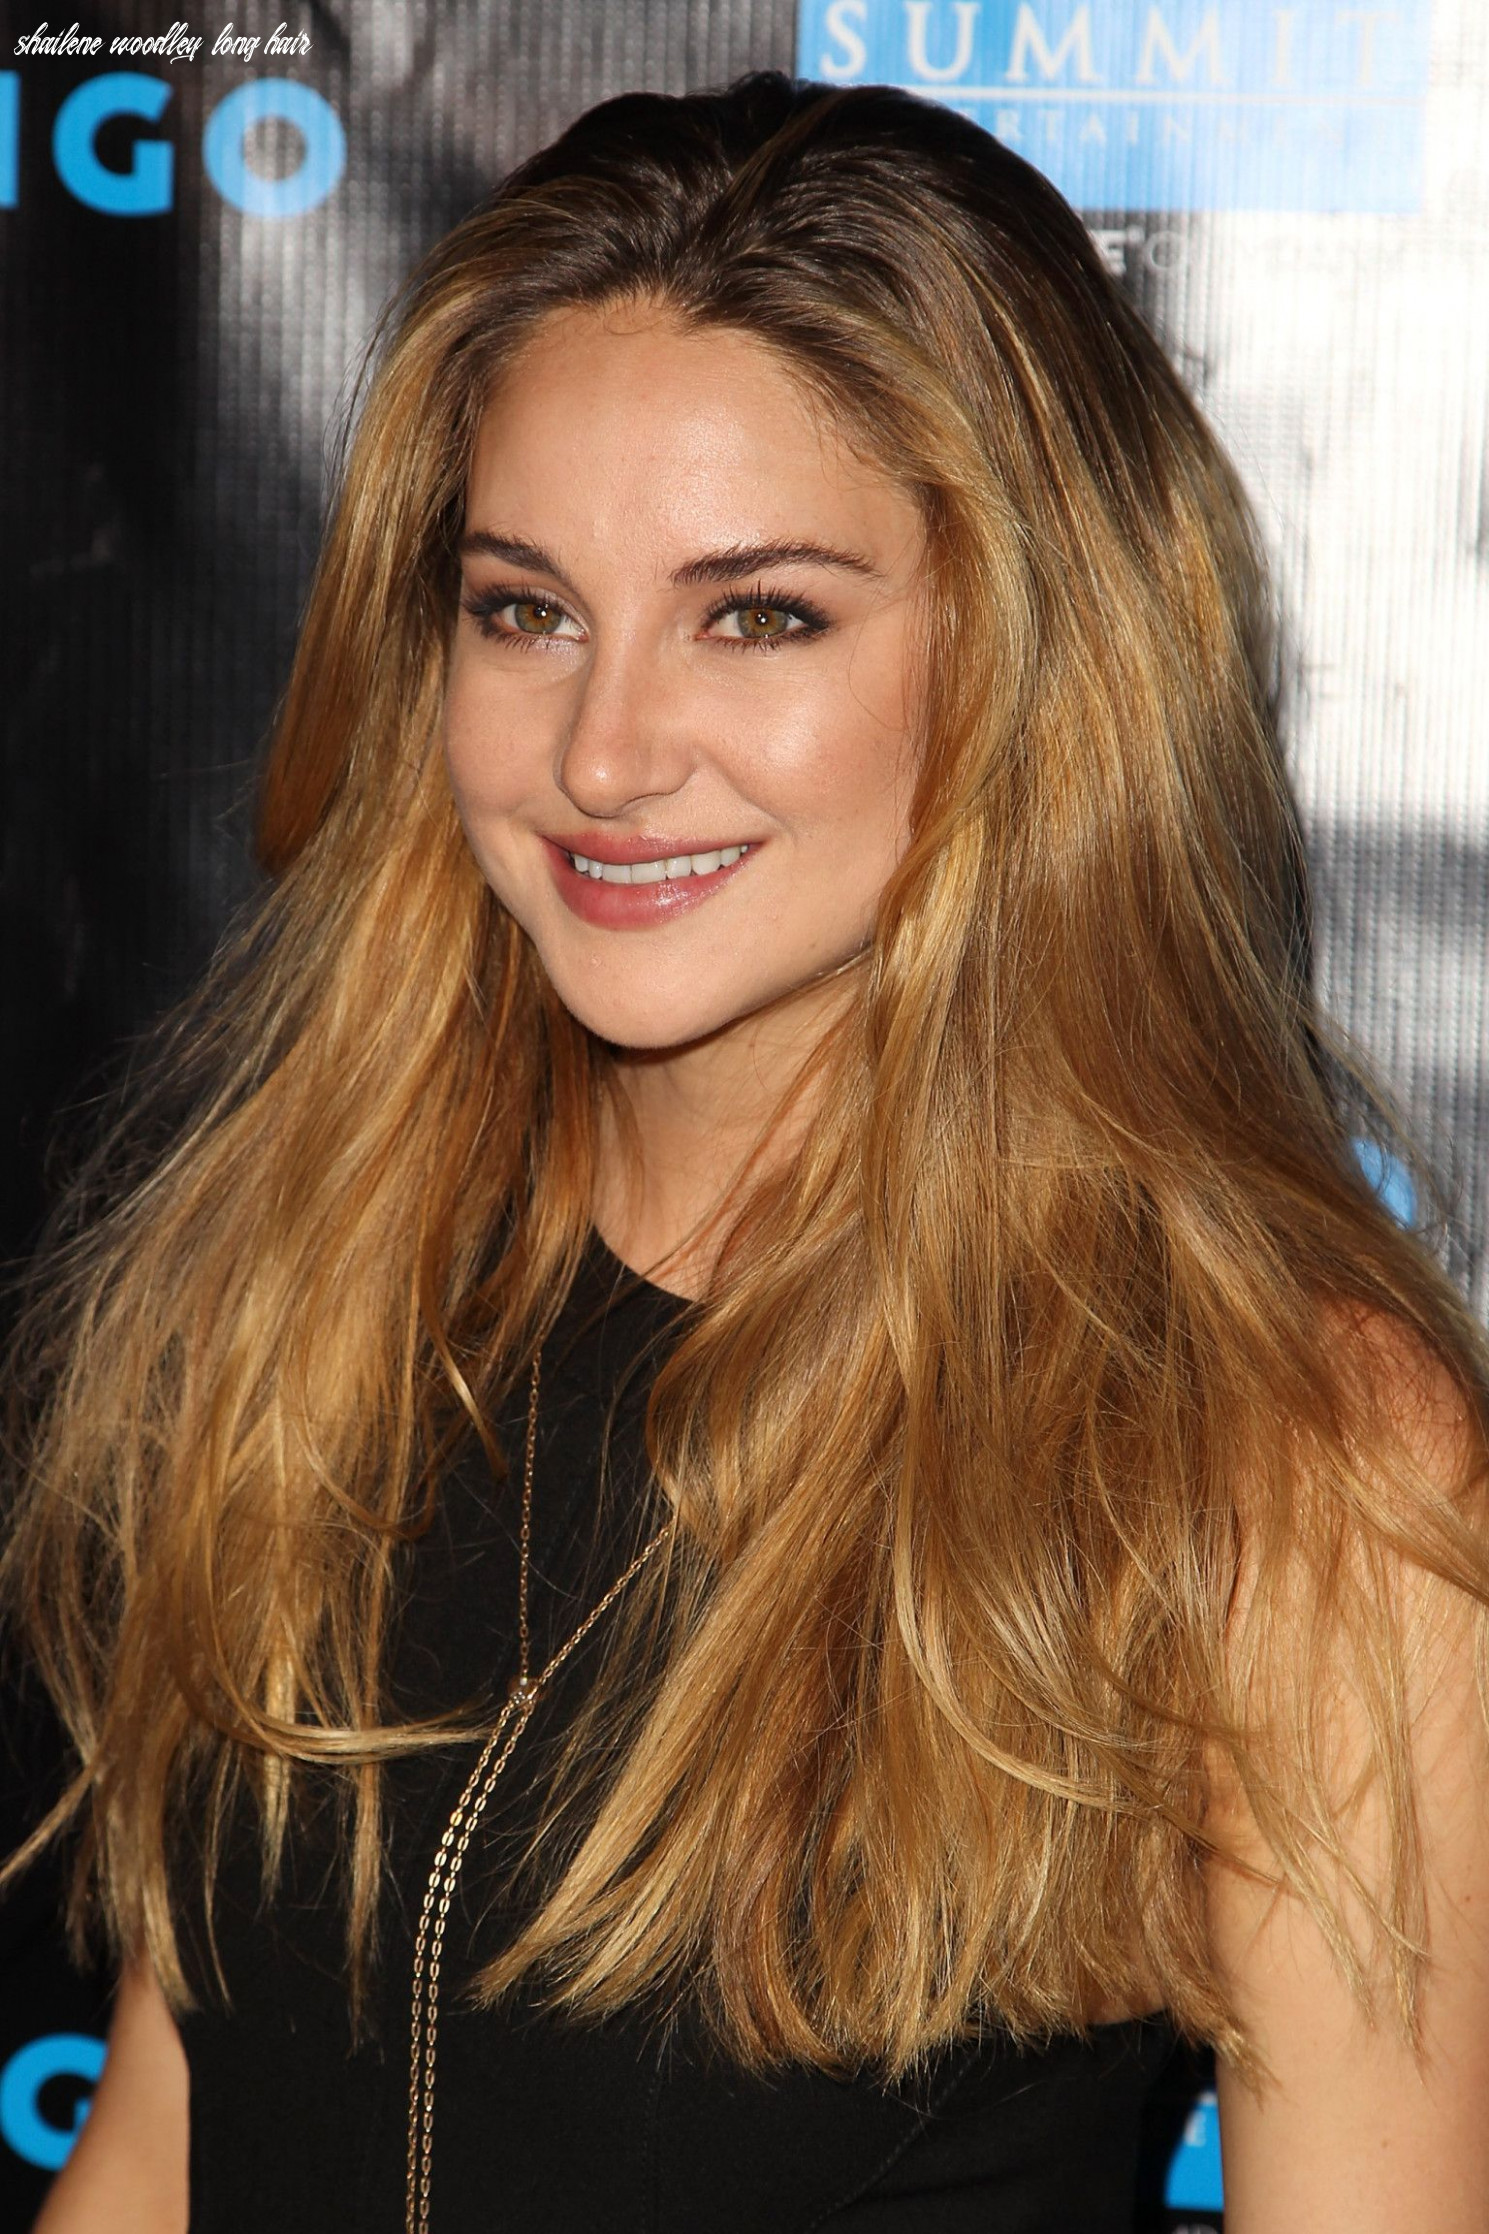 Look: shailene woodley will donate her hair after chopping it off